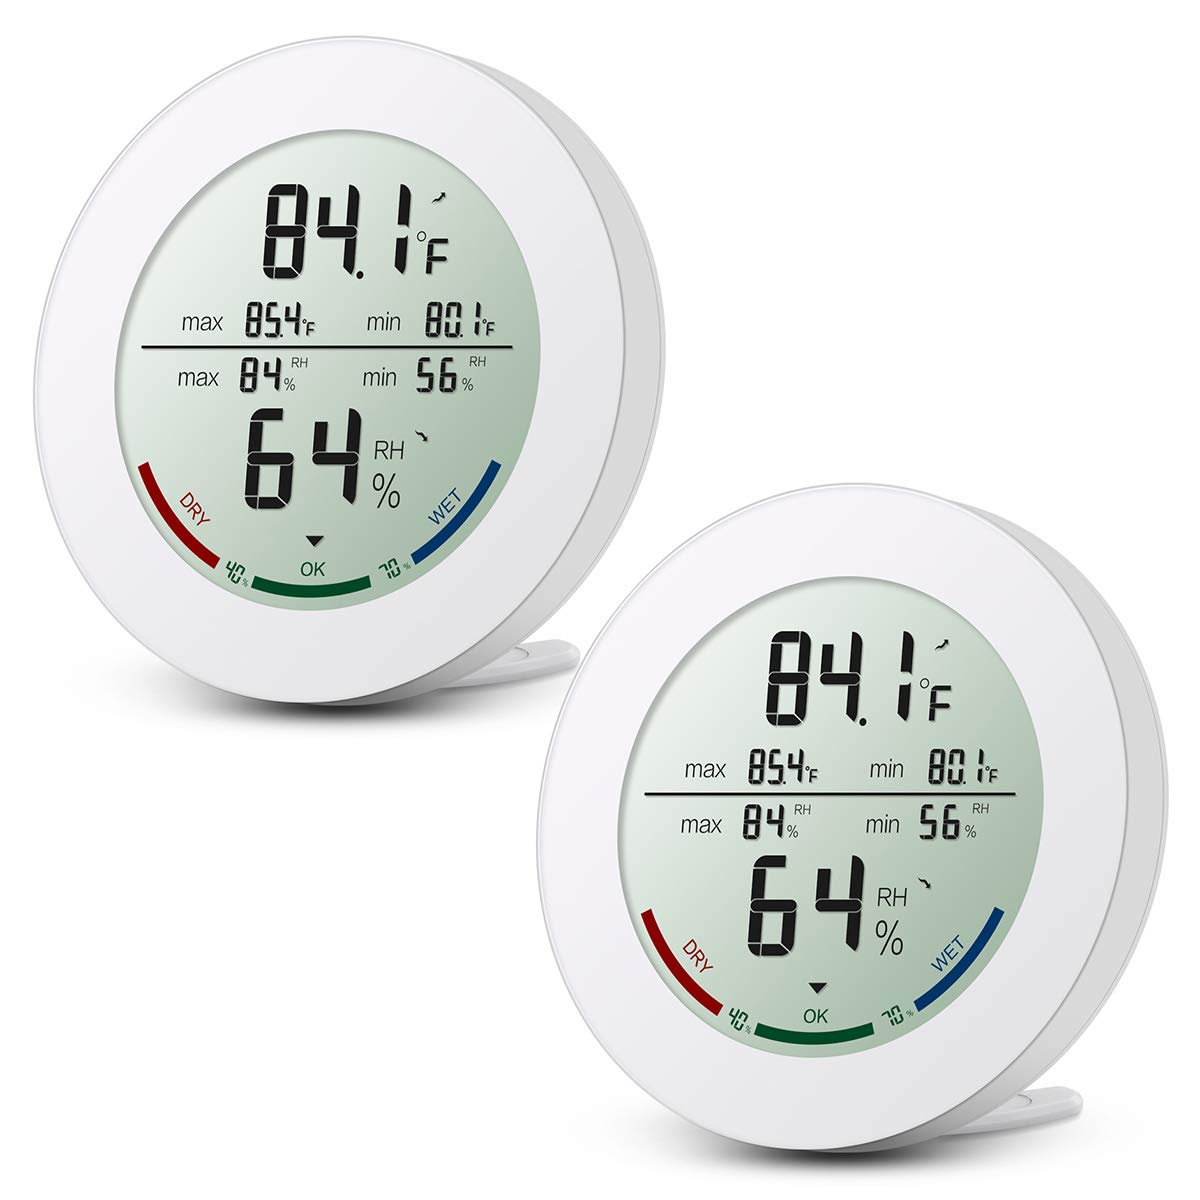 ORIA Digital Humidity Thermometer, Temperature Humidity Indoor, 2.5 Inches LCD Display, ℃ and ℉ Switch, Hygrometer Thermometer for Indoor Use, 2 Pack by ORIA